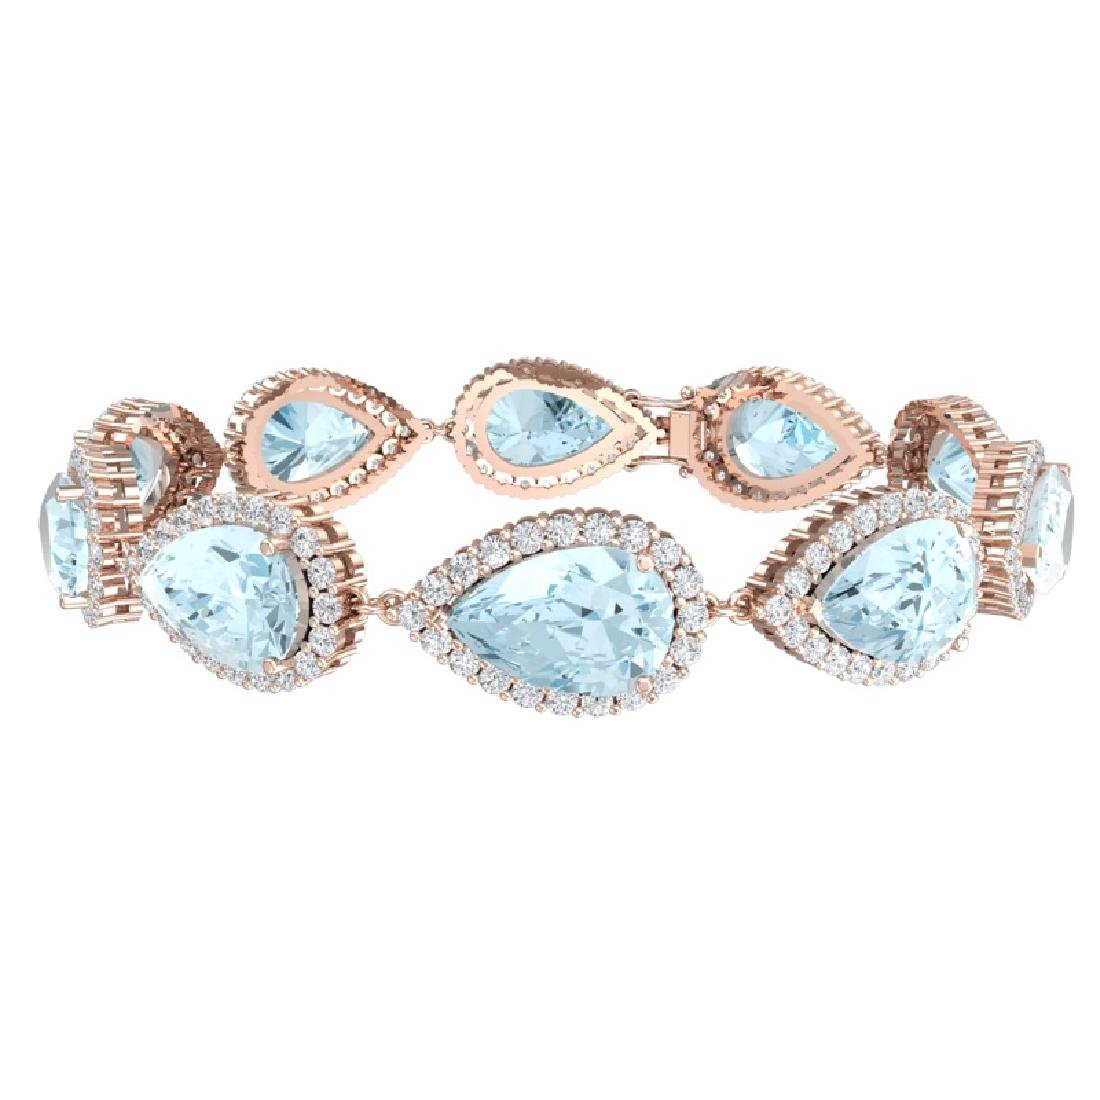 41.87 CTW Royalty Sky Topaz & VS Diamond Bracelet 18K - 3